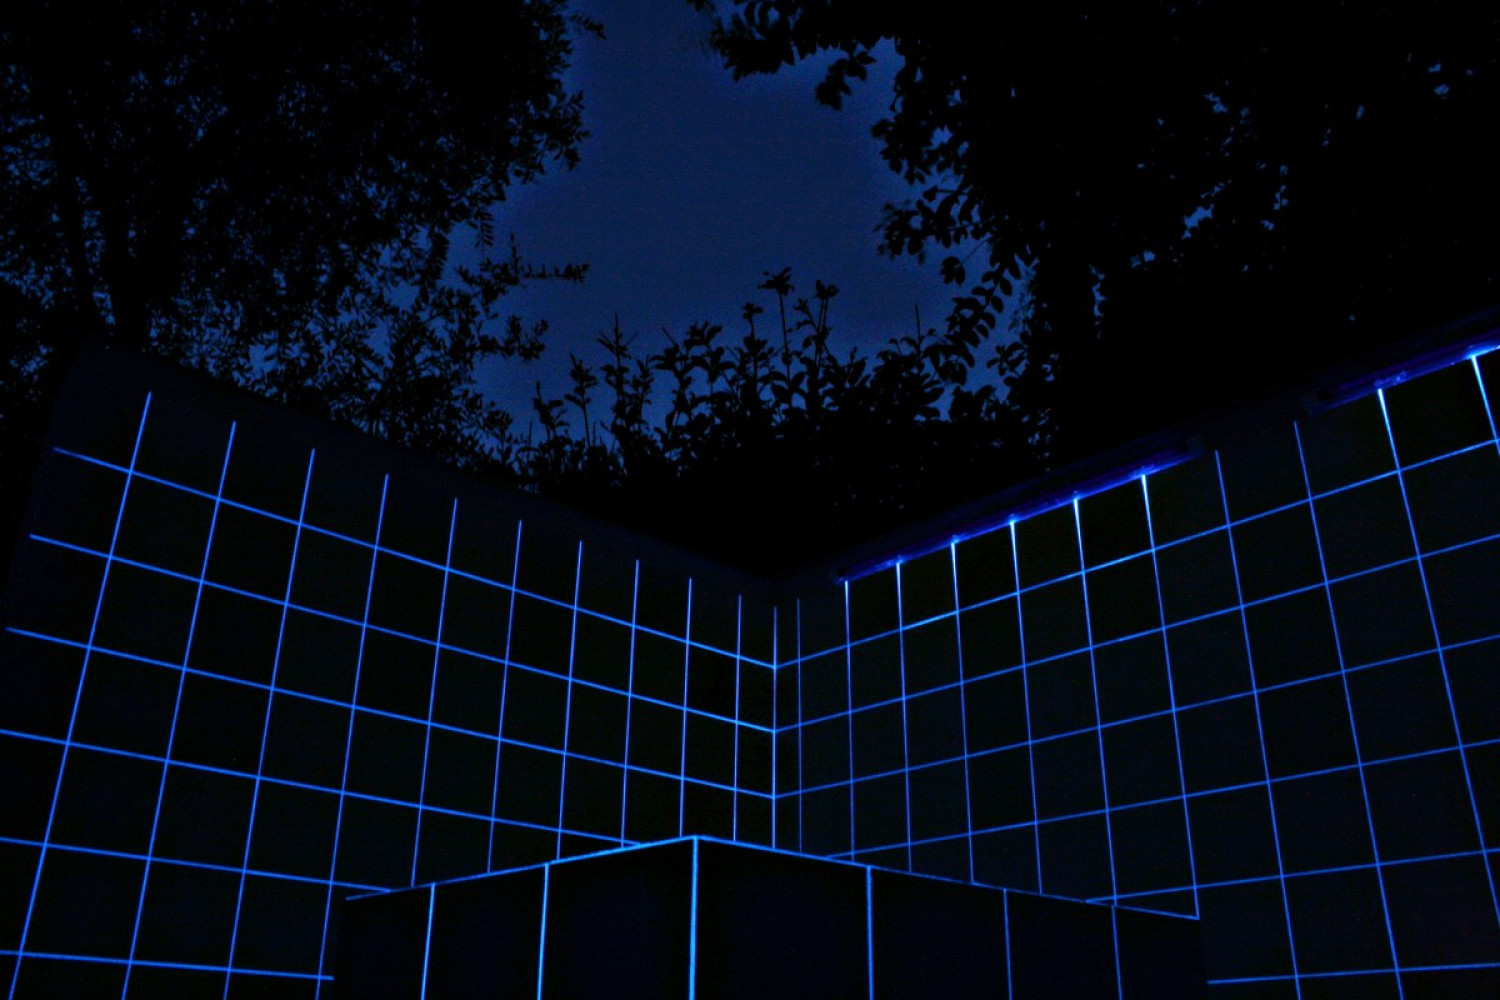 Alex Dorici, 'Azulejos Light Line 844 (night view)', 2016